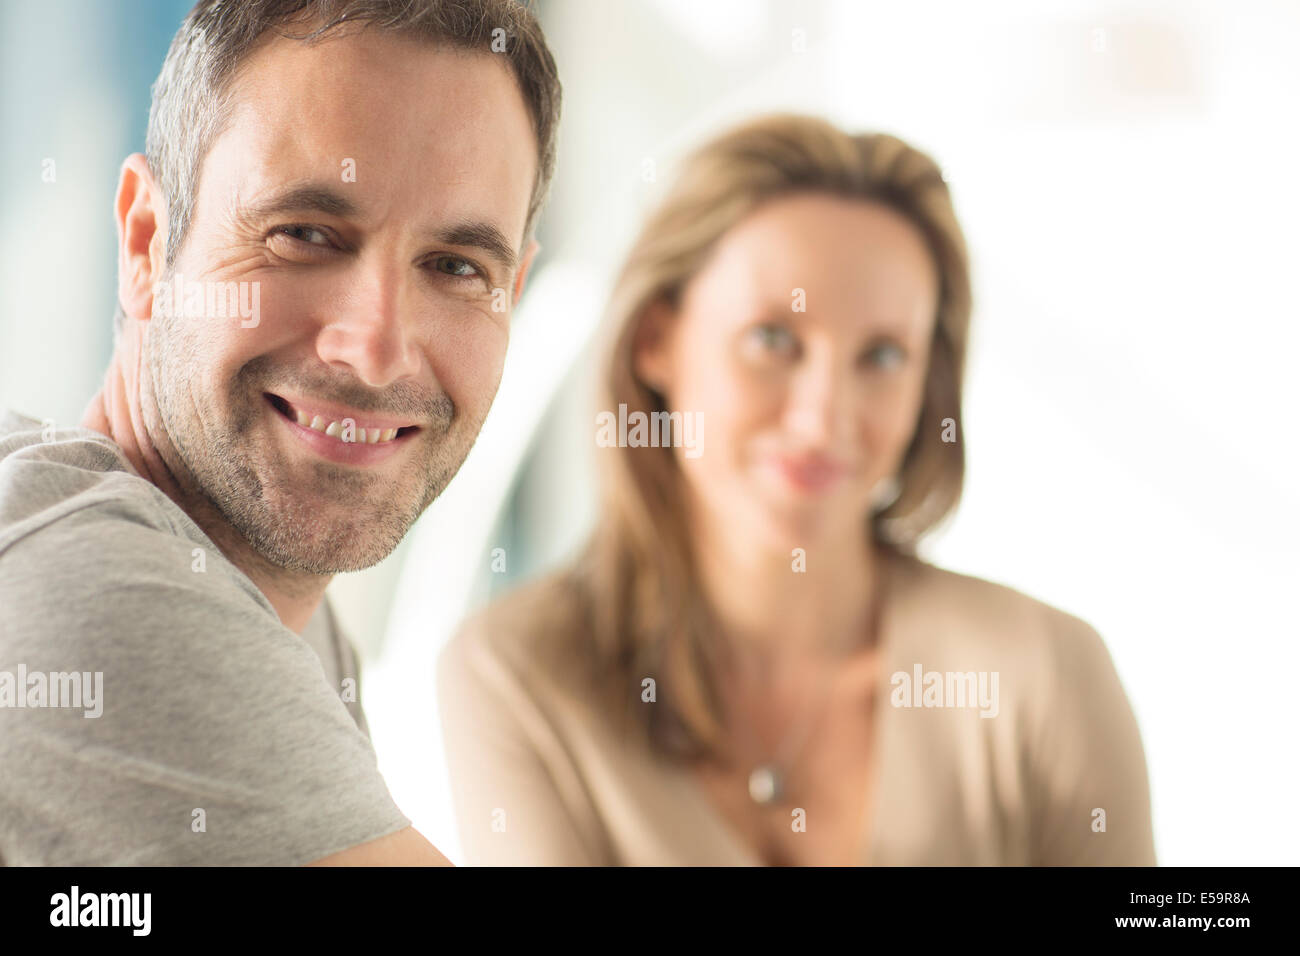 Close up of man's smiling face - Stock Image